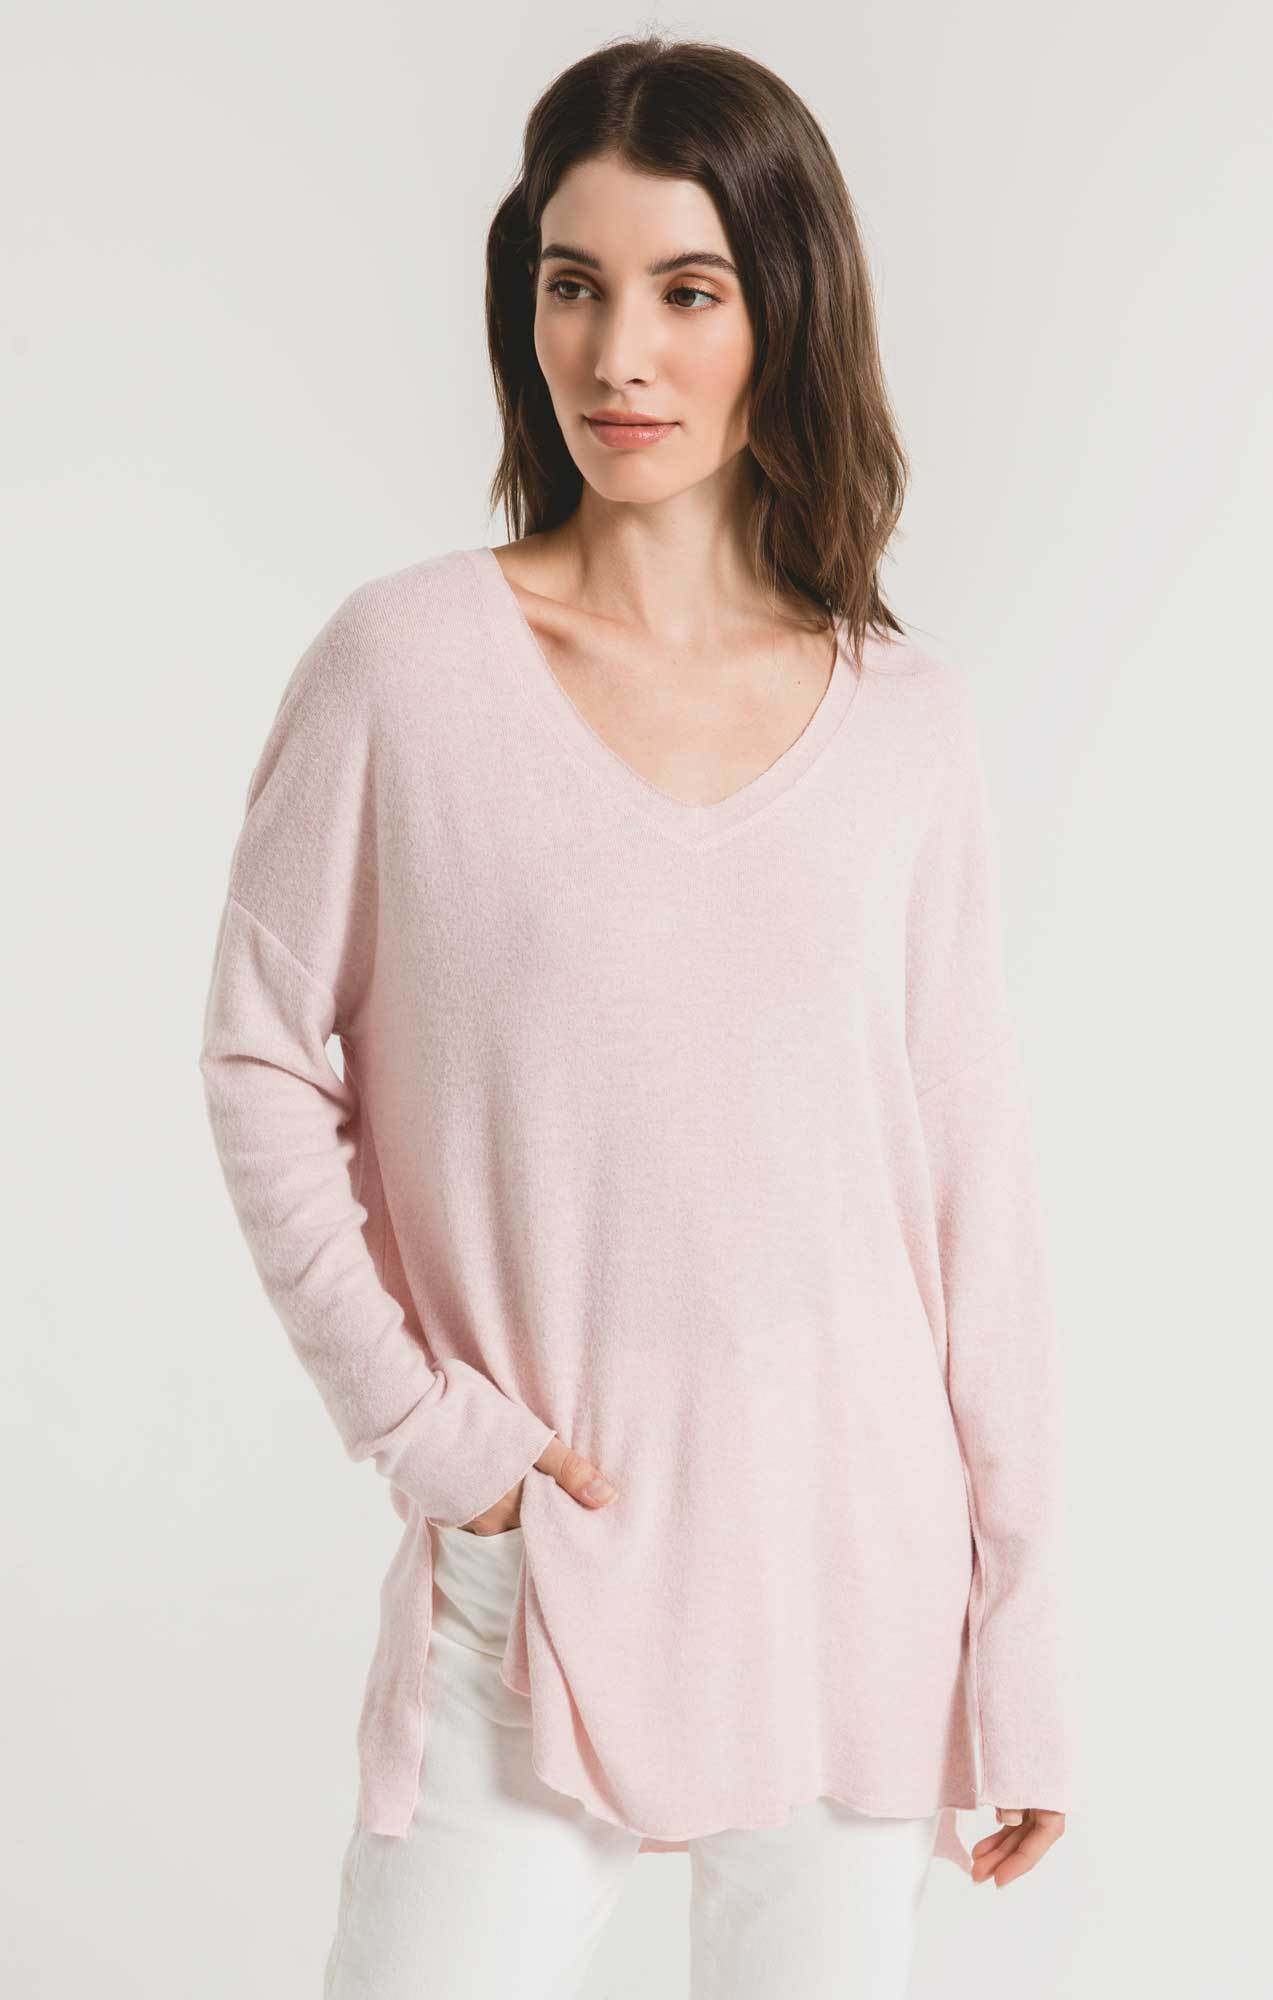 Tops Marled Sweater Knit V-Neck Tunic Pale Blush/Ivory